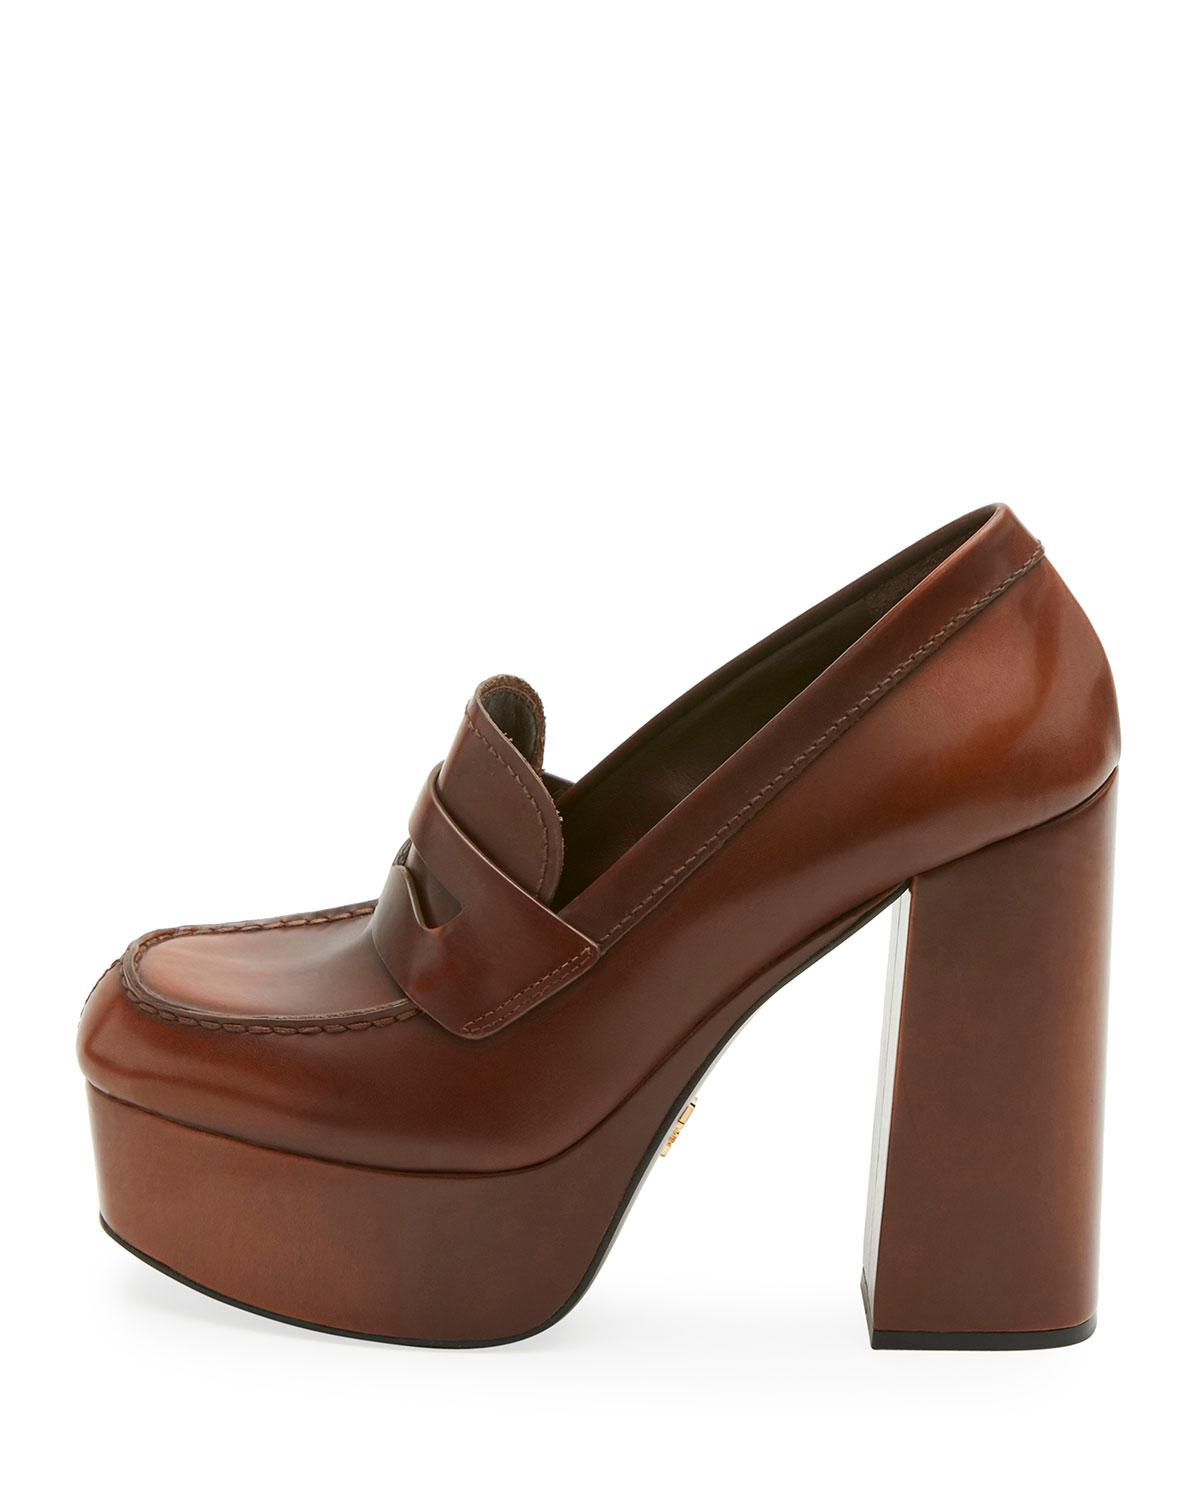 28cfc7b07a26 ... order lyst prada burnished leather platform loafer pump in brown 293c3  6b058 ...